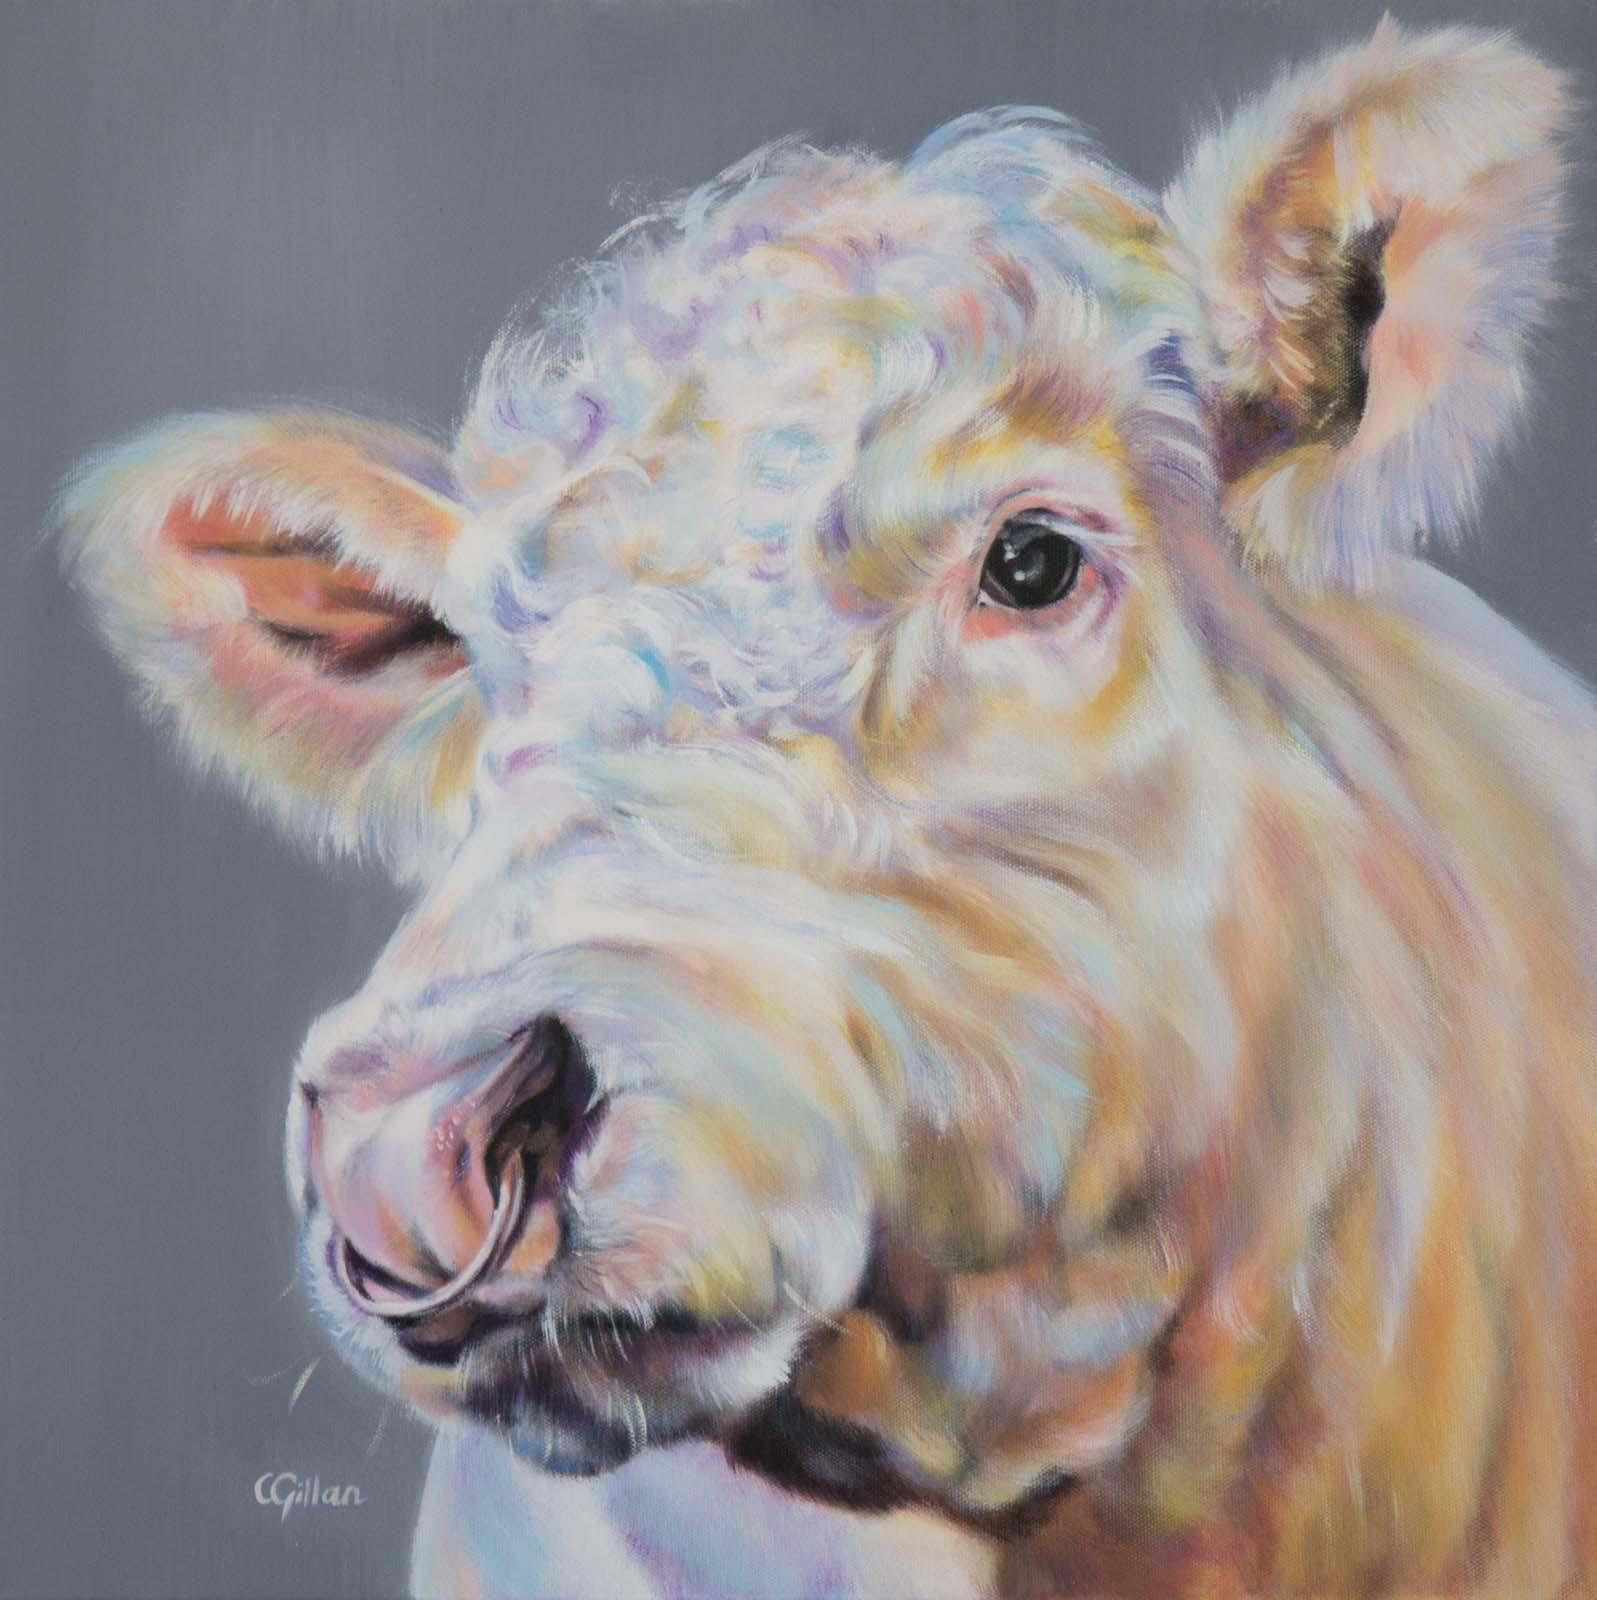 Inquisitive, Carol Gillan